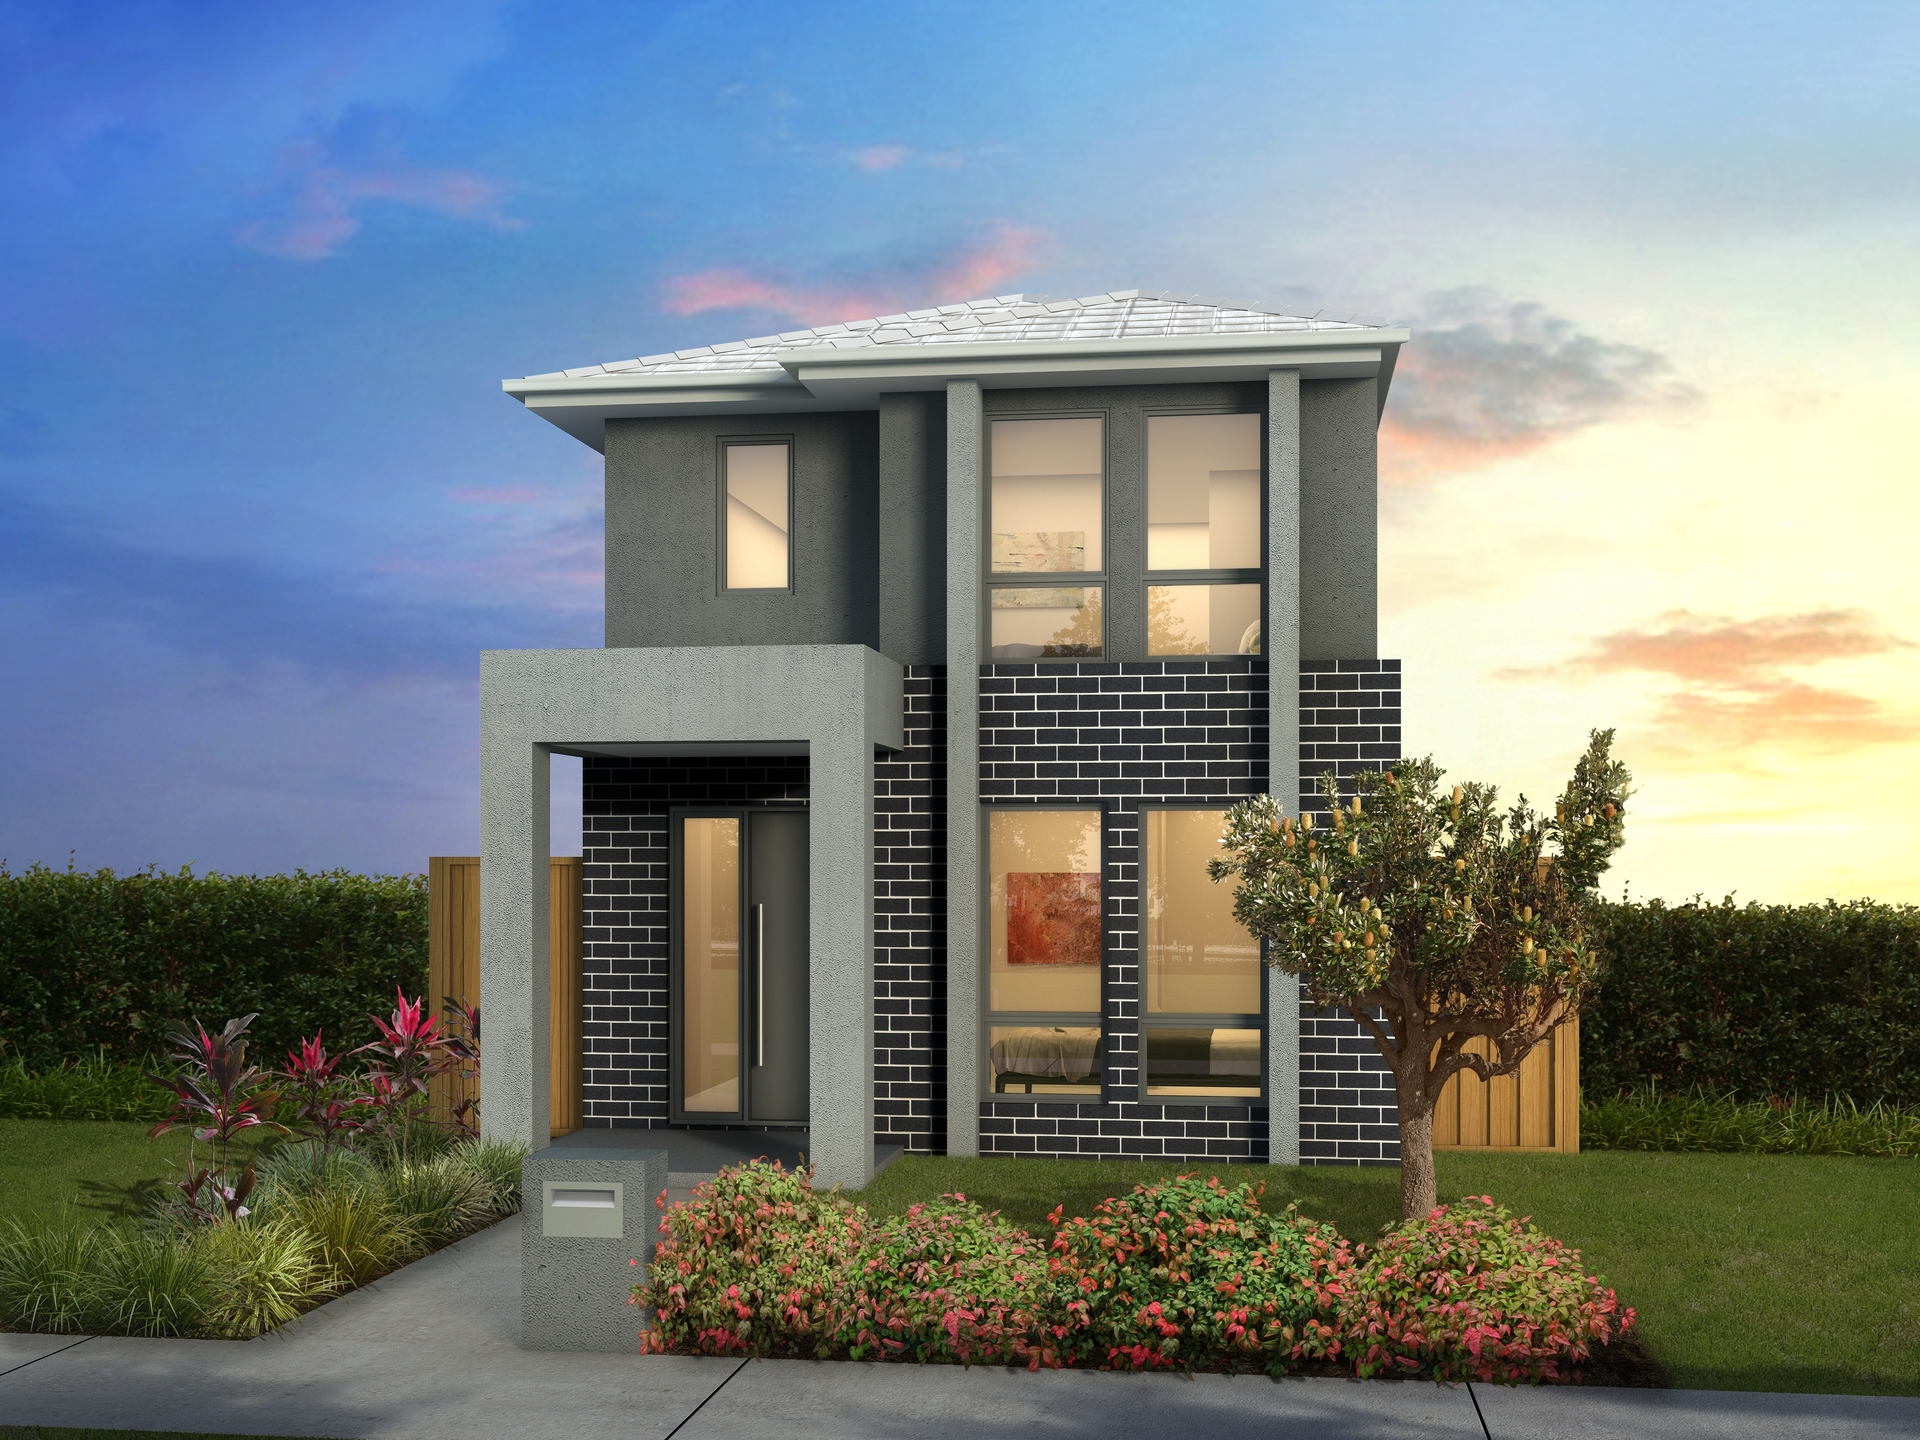 Austral Lot 89 | 60 Edmondson Avenue Austral